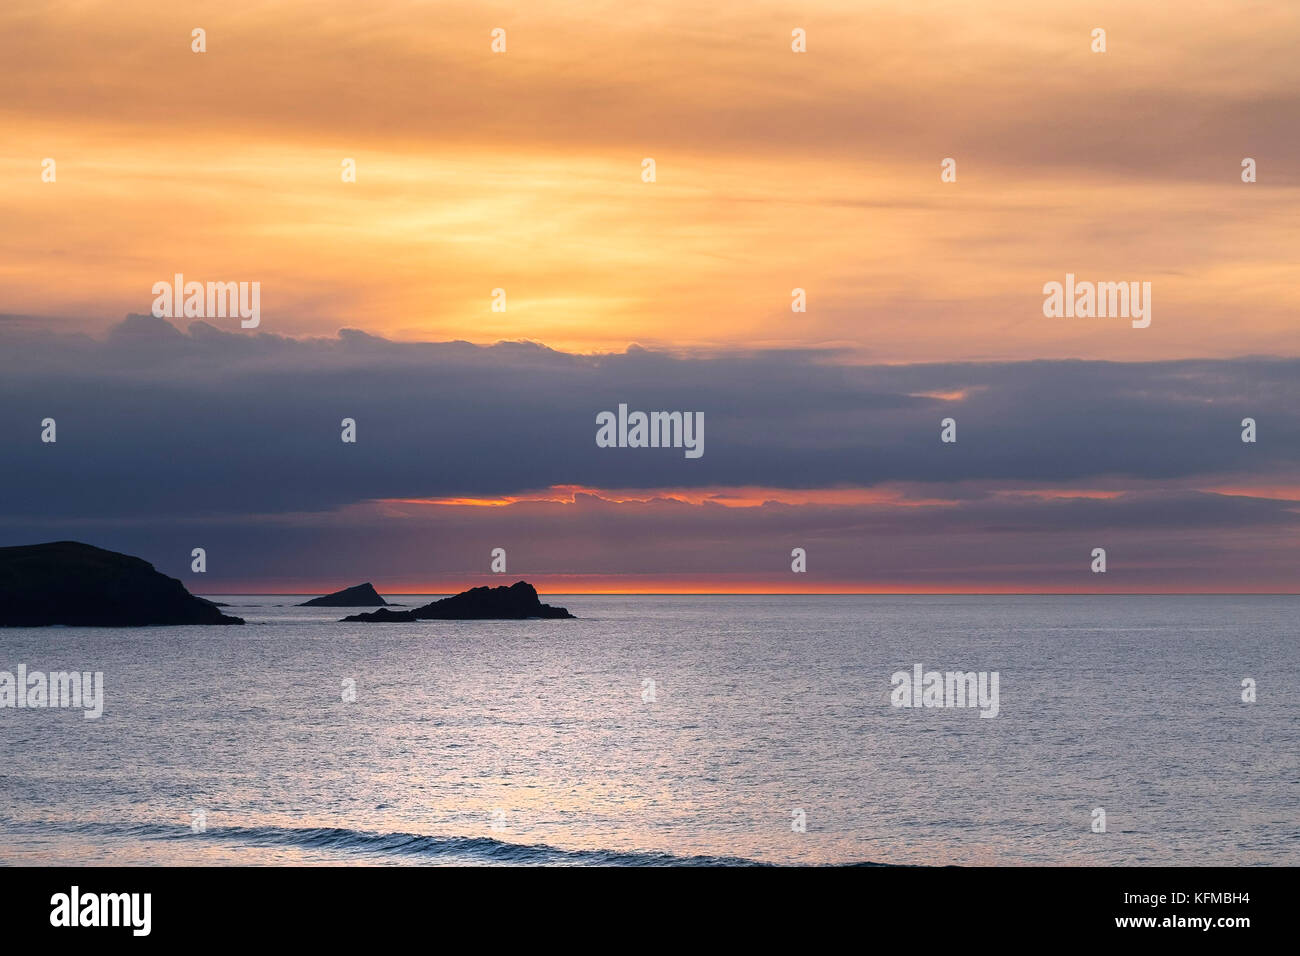 Spectacular sunset - The Goose and The Chick small islands off East Pentire Headland are seeen in silhouette as Stock Photo